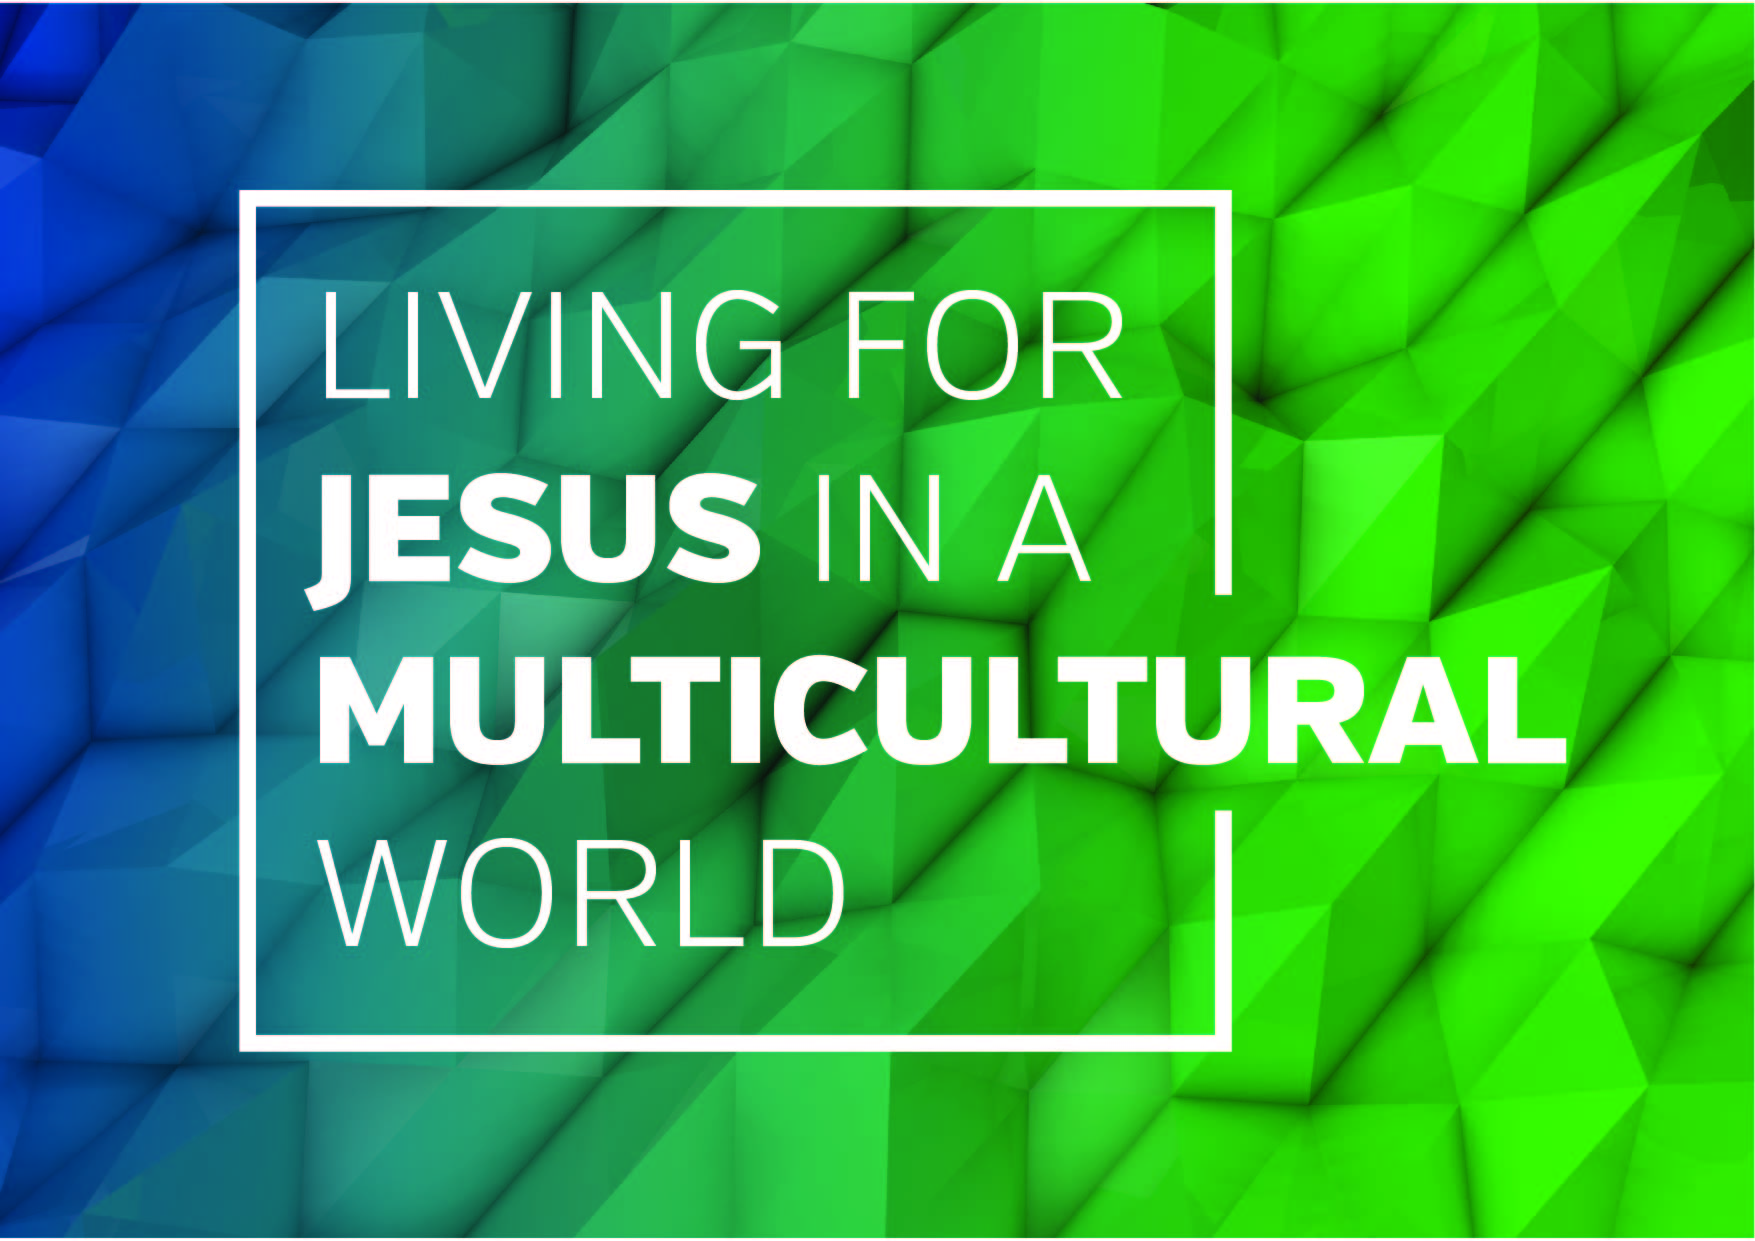 Living for Jesus in a Multicultural World – AM service